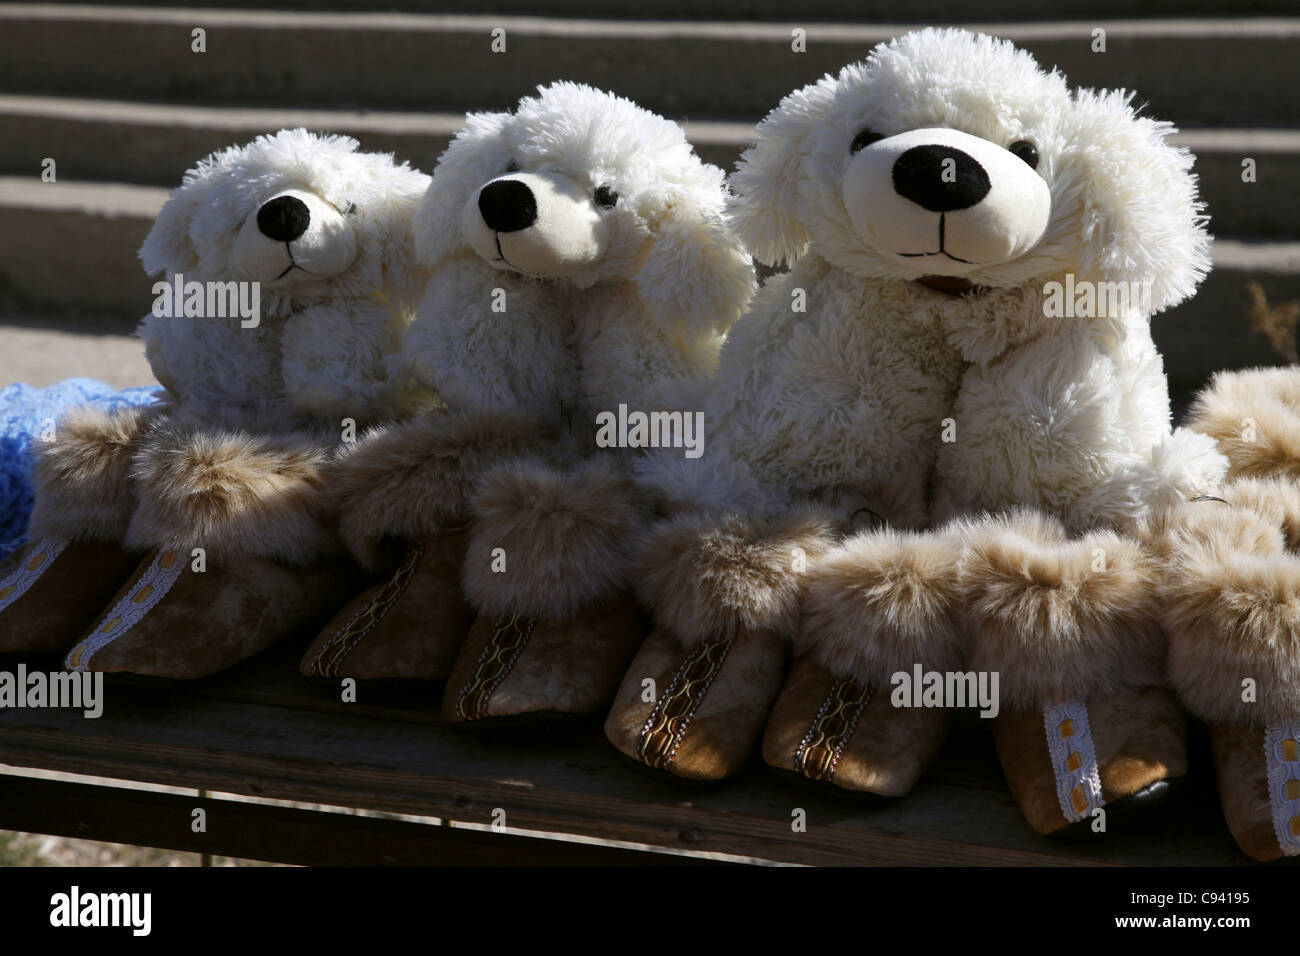 QUETE CUDDLY TOY DOGS AI-PETRI CRIMEA UKRAINE 27 September 2011 - Stock Image